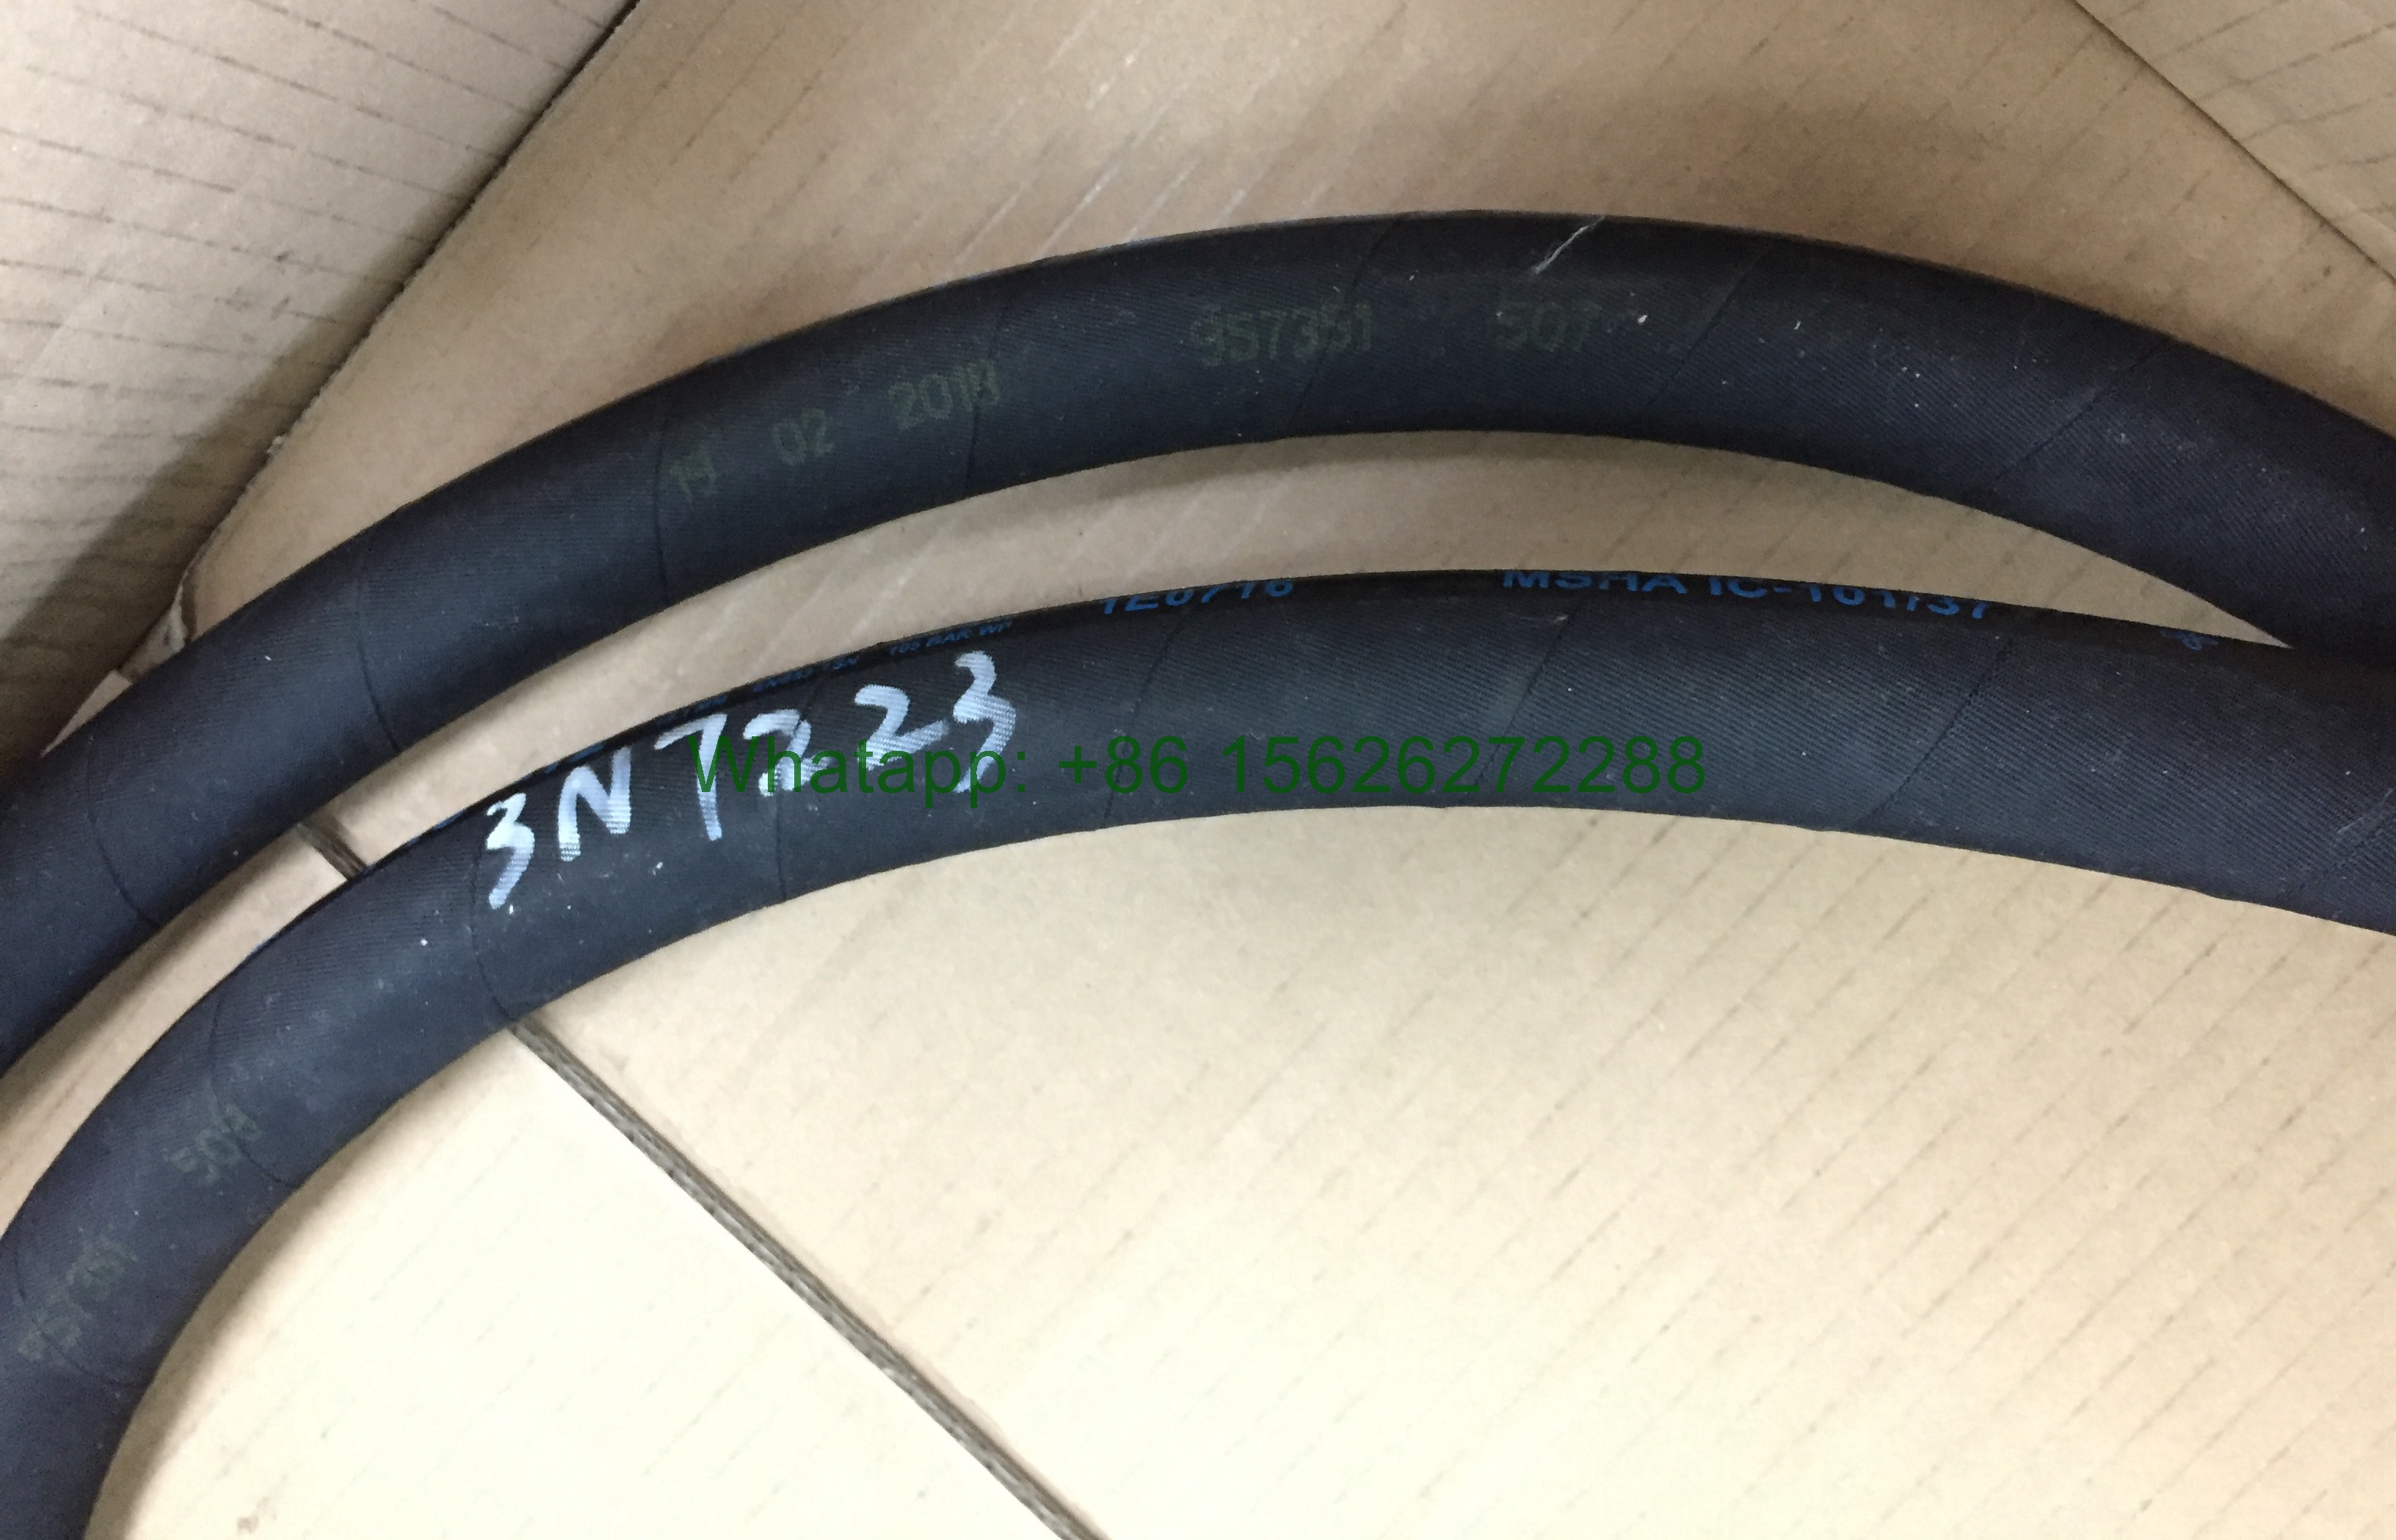 Caterpillar HOSE AS 3N7223